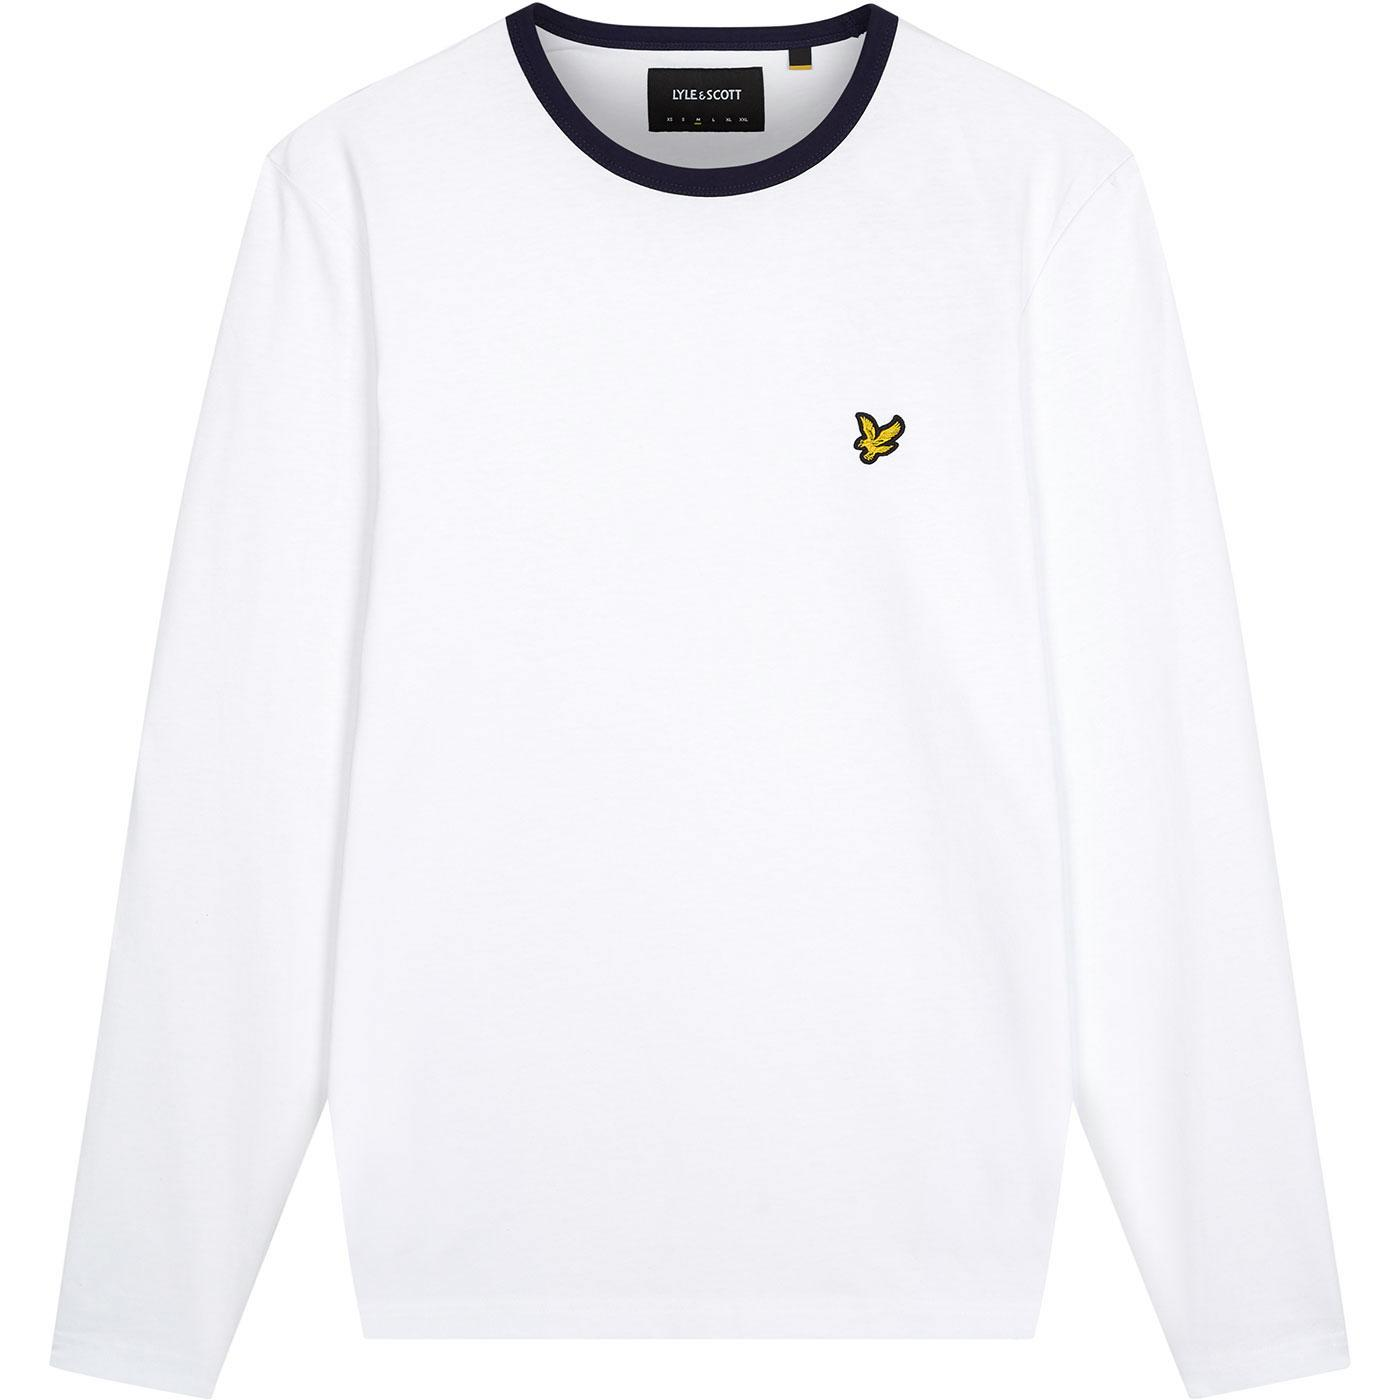 LYLE & SCOTT Retro Long Sleeve Ringer Tee - White